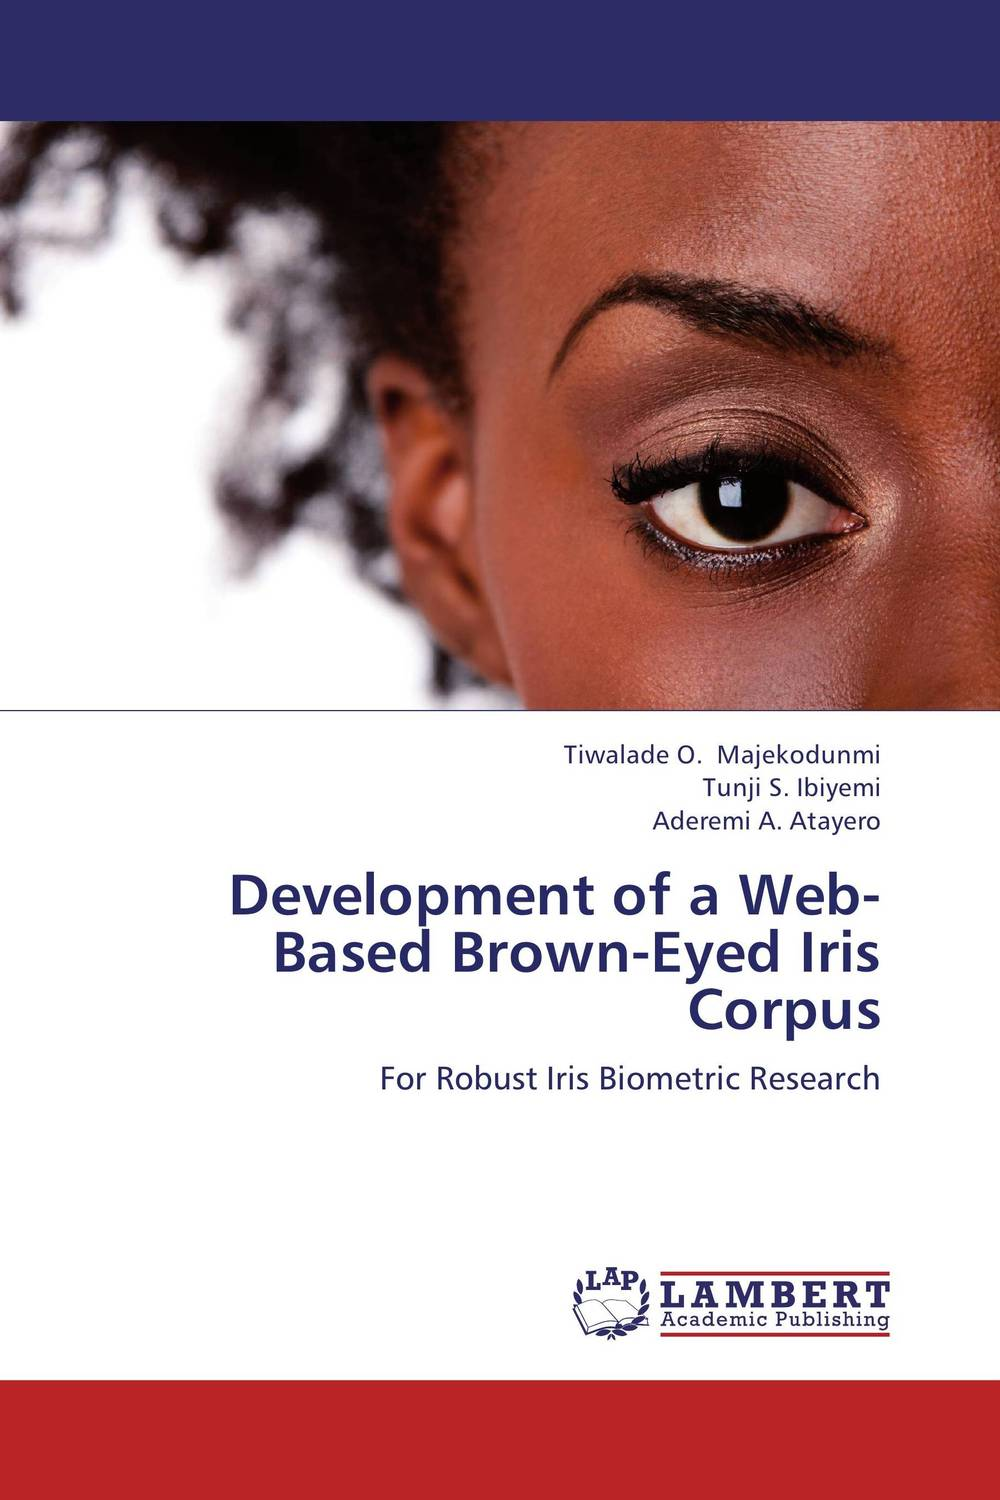 Development of a Web-Based Brown-Eyed Iris Corpus overview of web based business